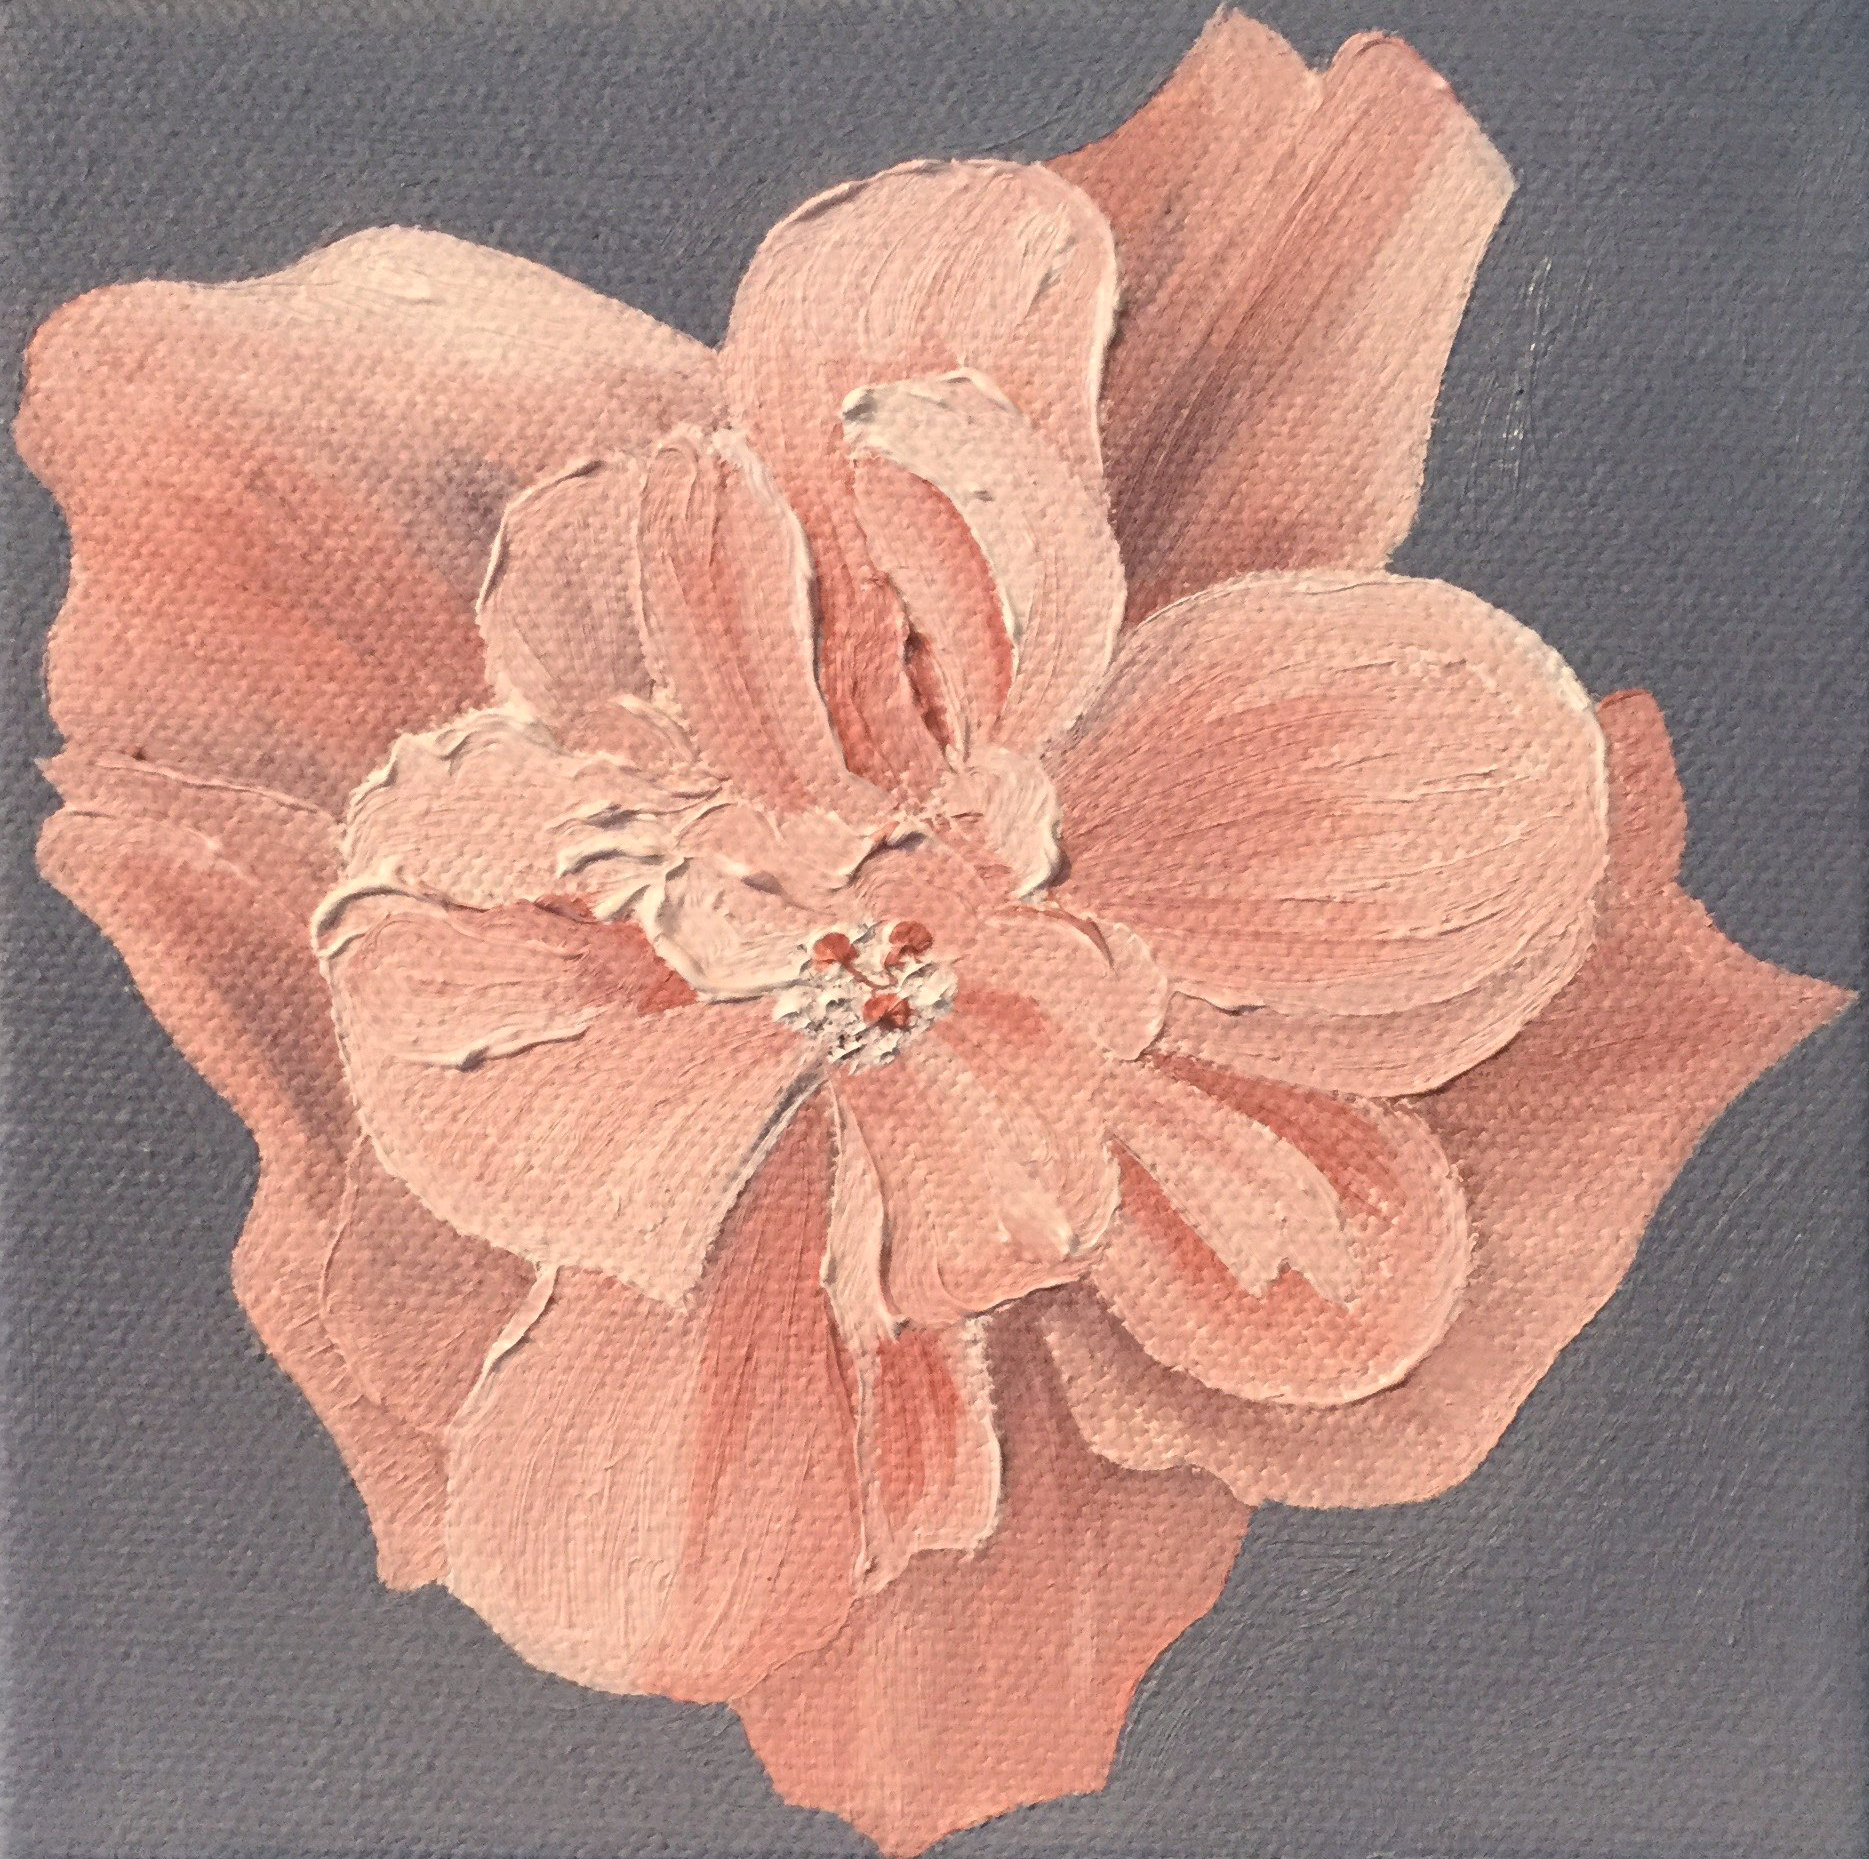 Peach Hibiscus , 2017 551291572117 Oil on canvas 5 x 5 x 1.5 inches